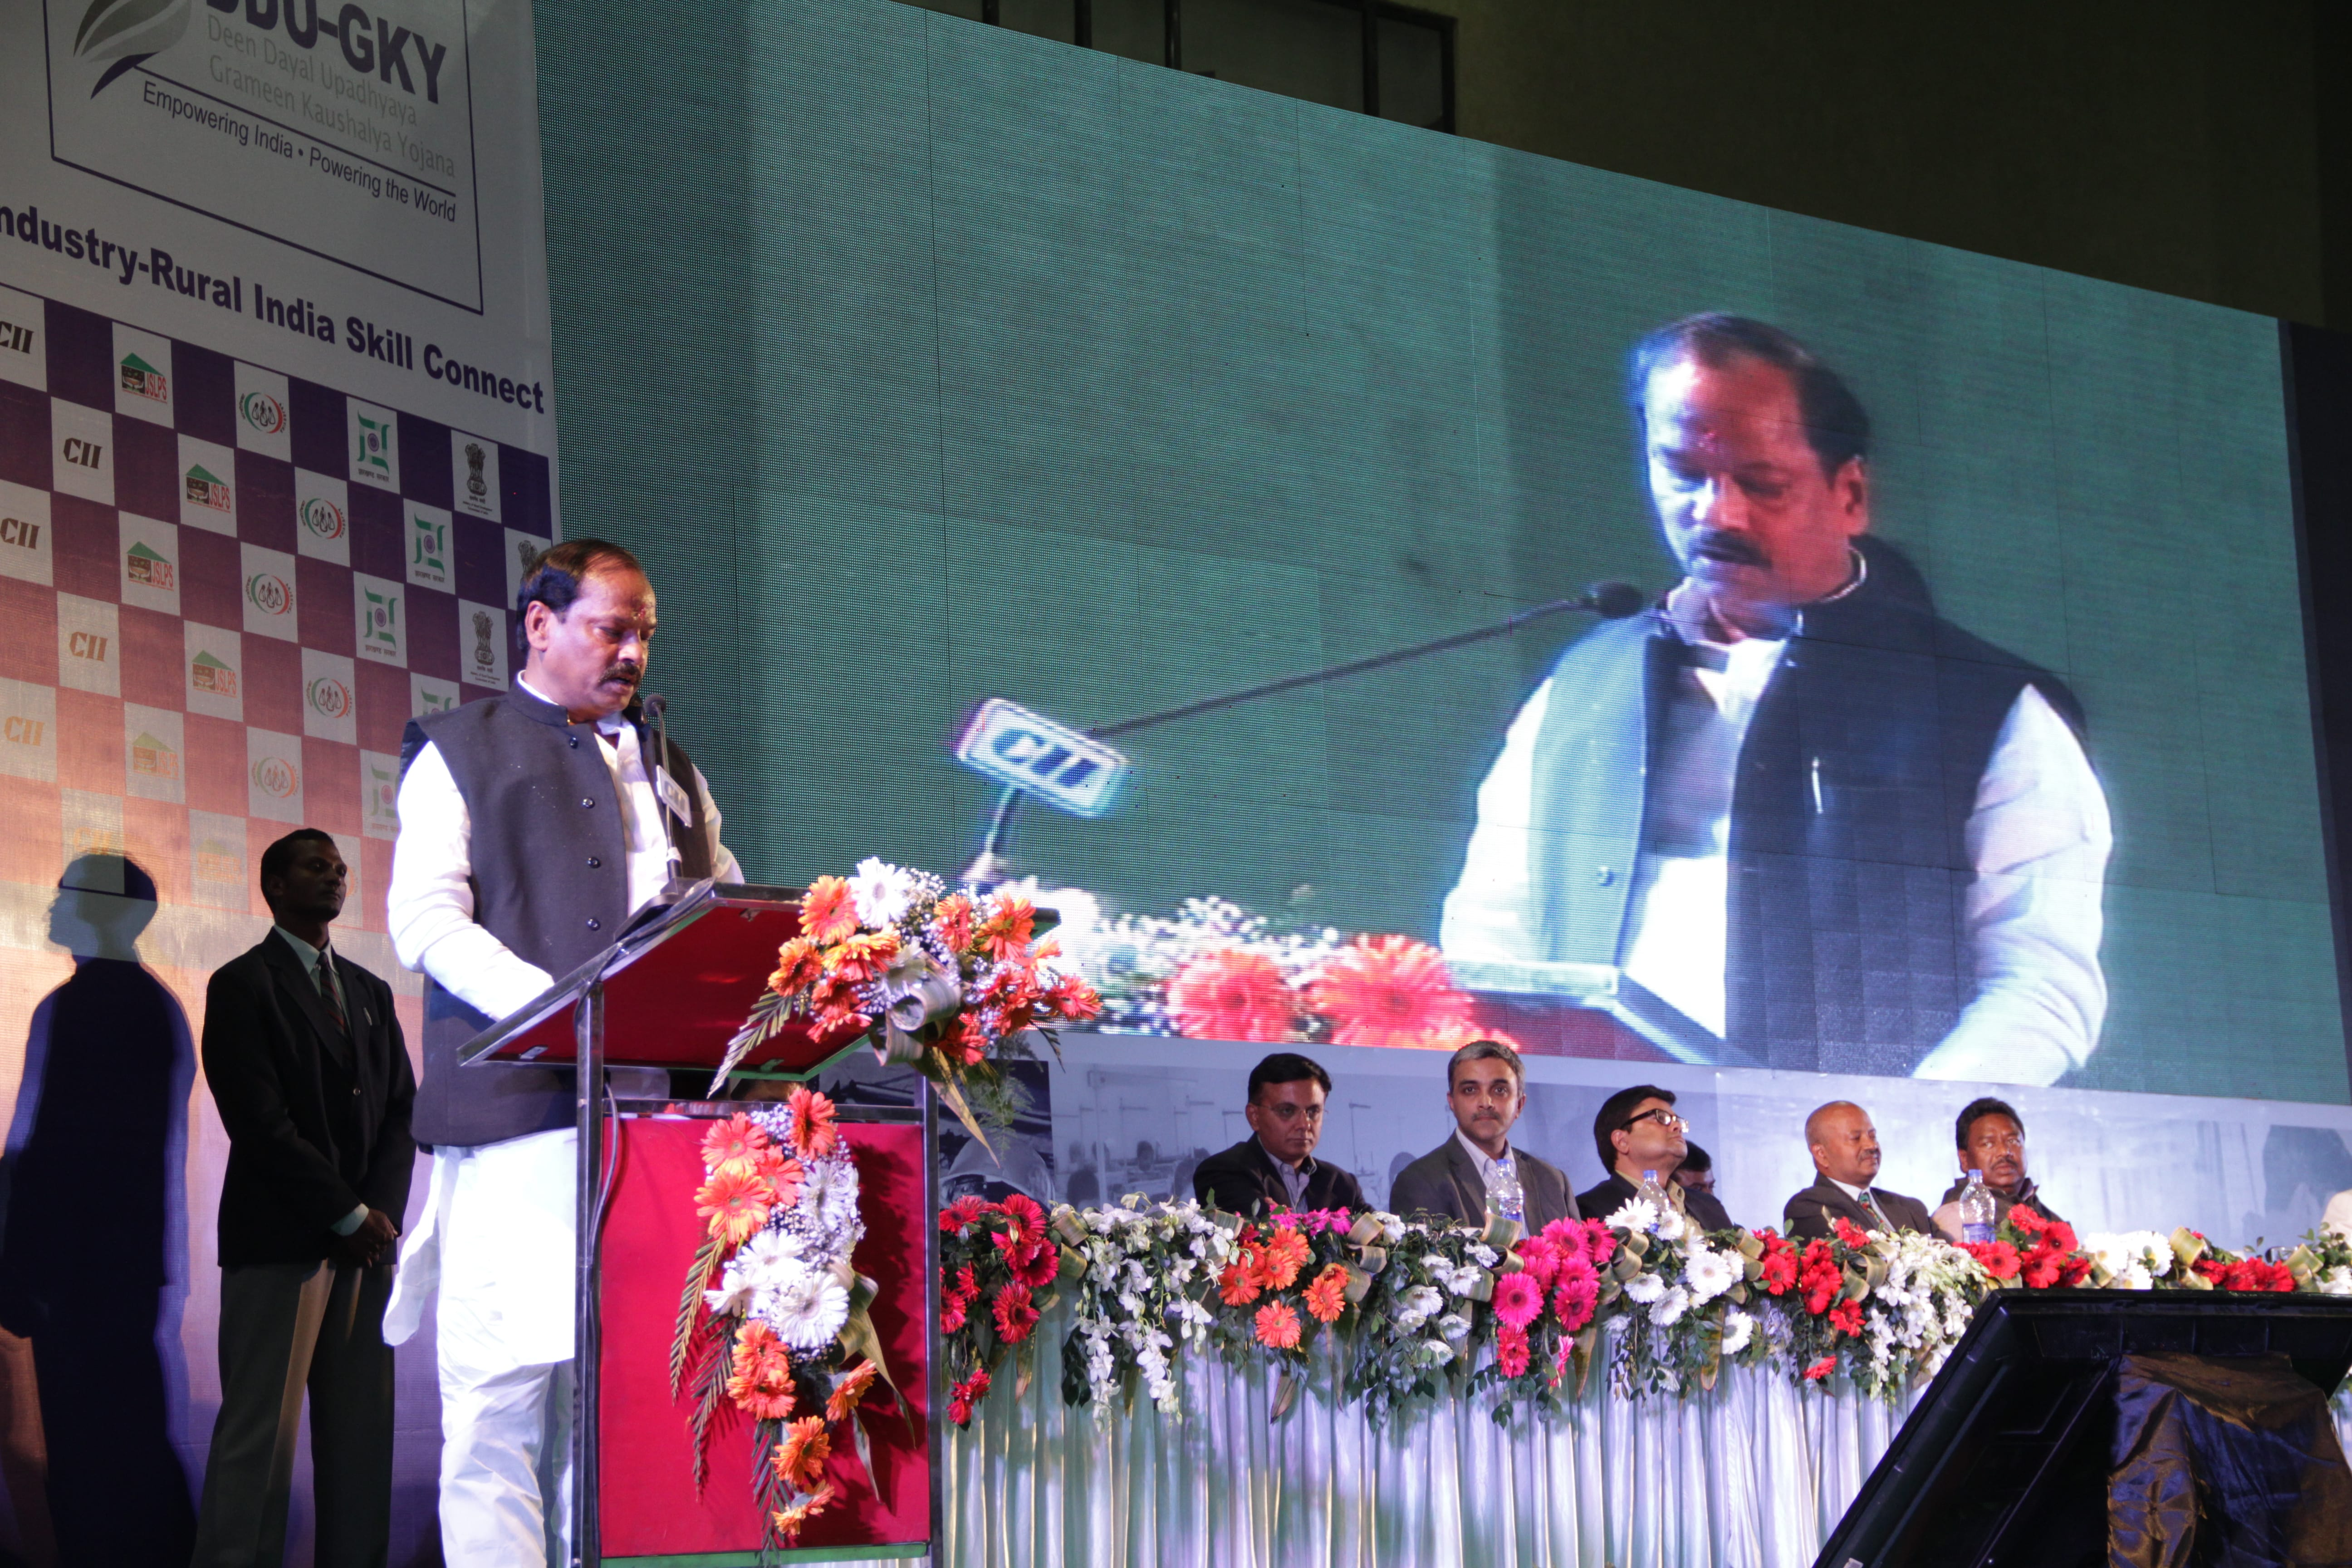 Hon'ble CM, Jharkhand Addresing the gathering at Industry-Rural India Connect